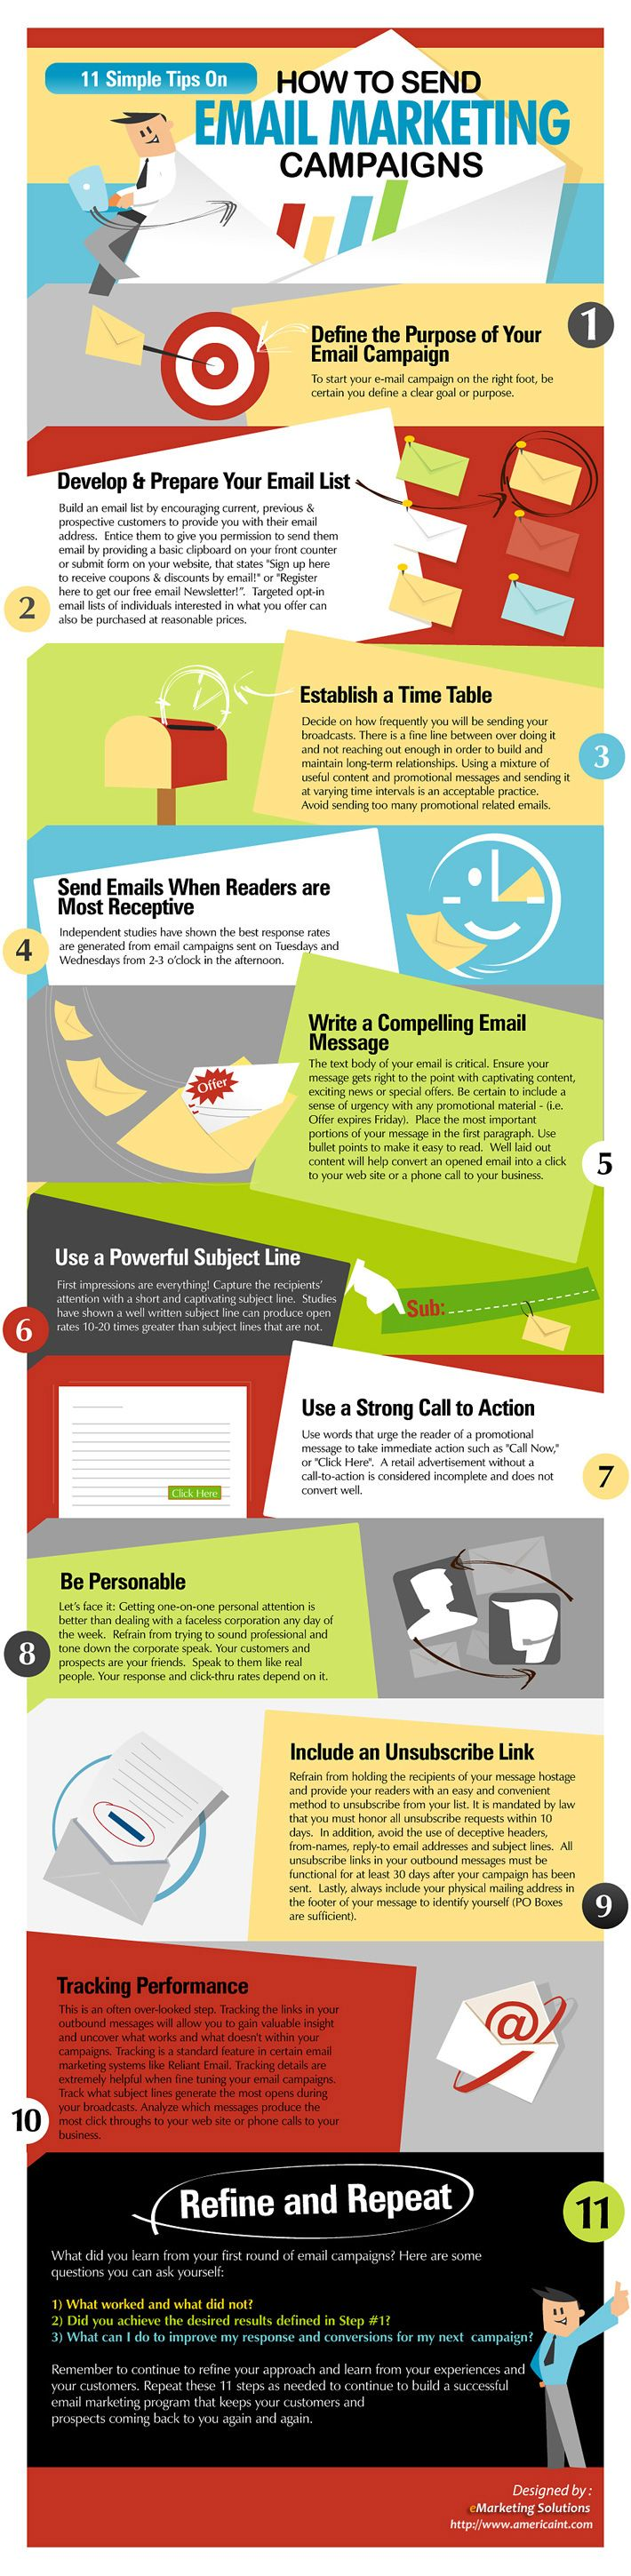 11 Tips on Sending Email Marketing Campaigns